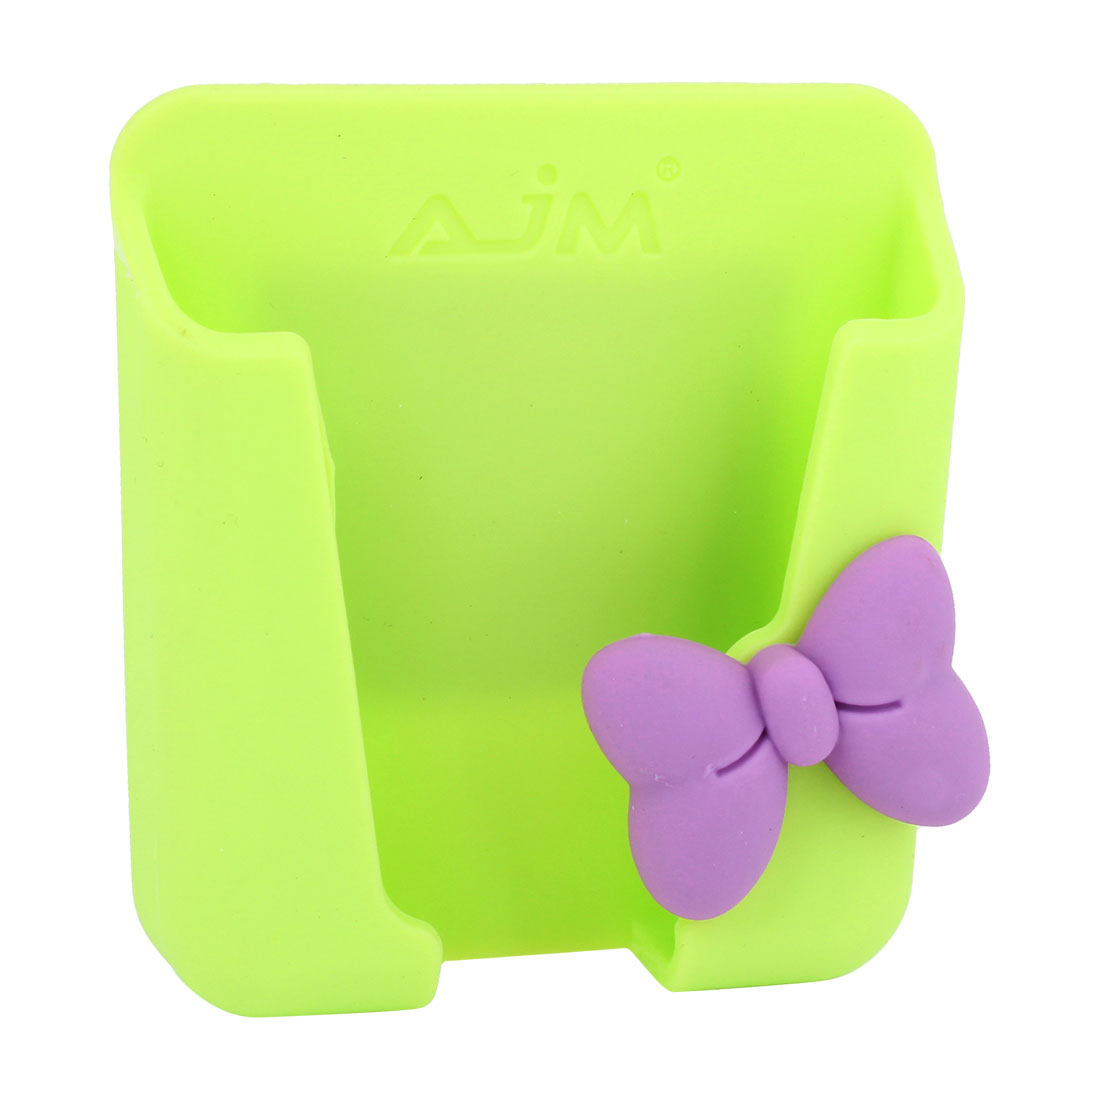 Green Silicone Bowknot Detail Mobile Phone Card Holder for Auto Car Van